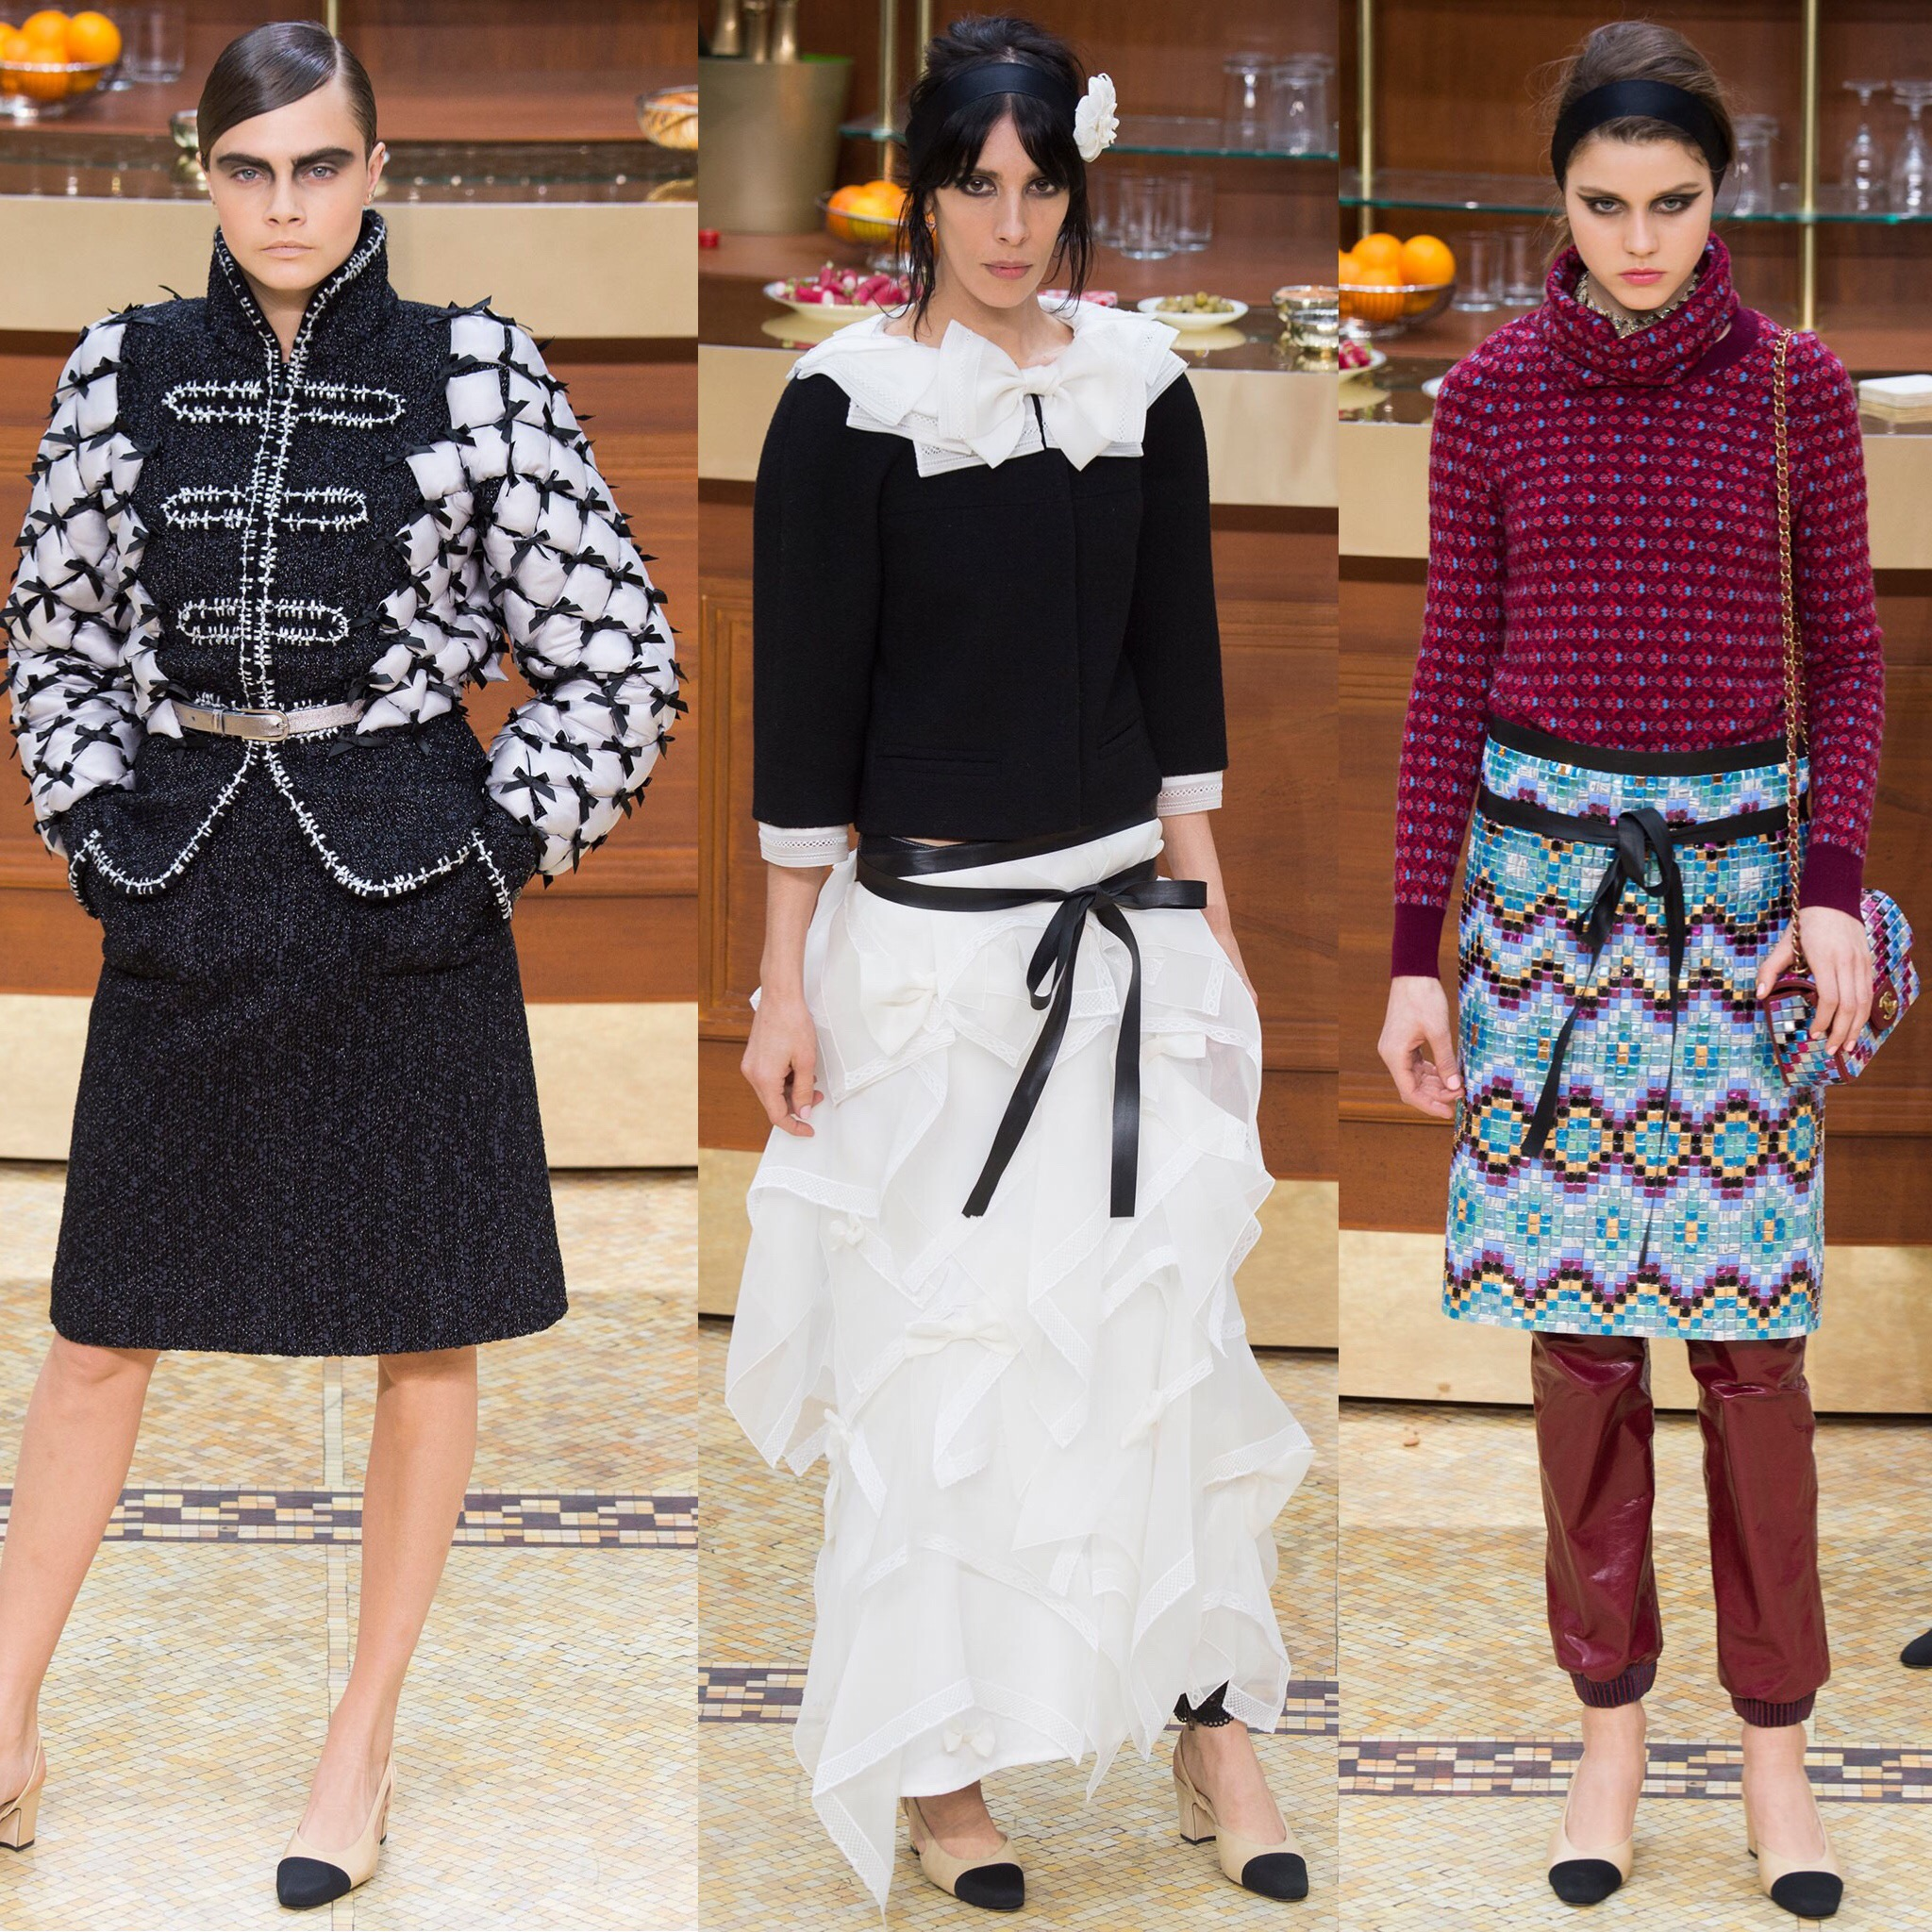 Chanel fw 2015  three images